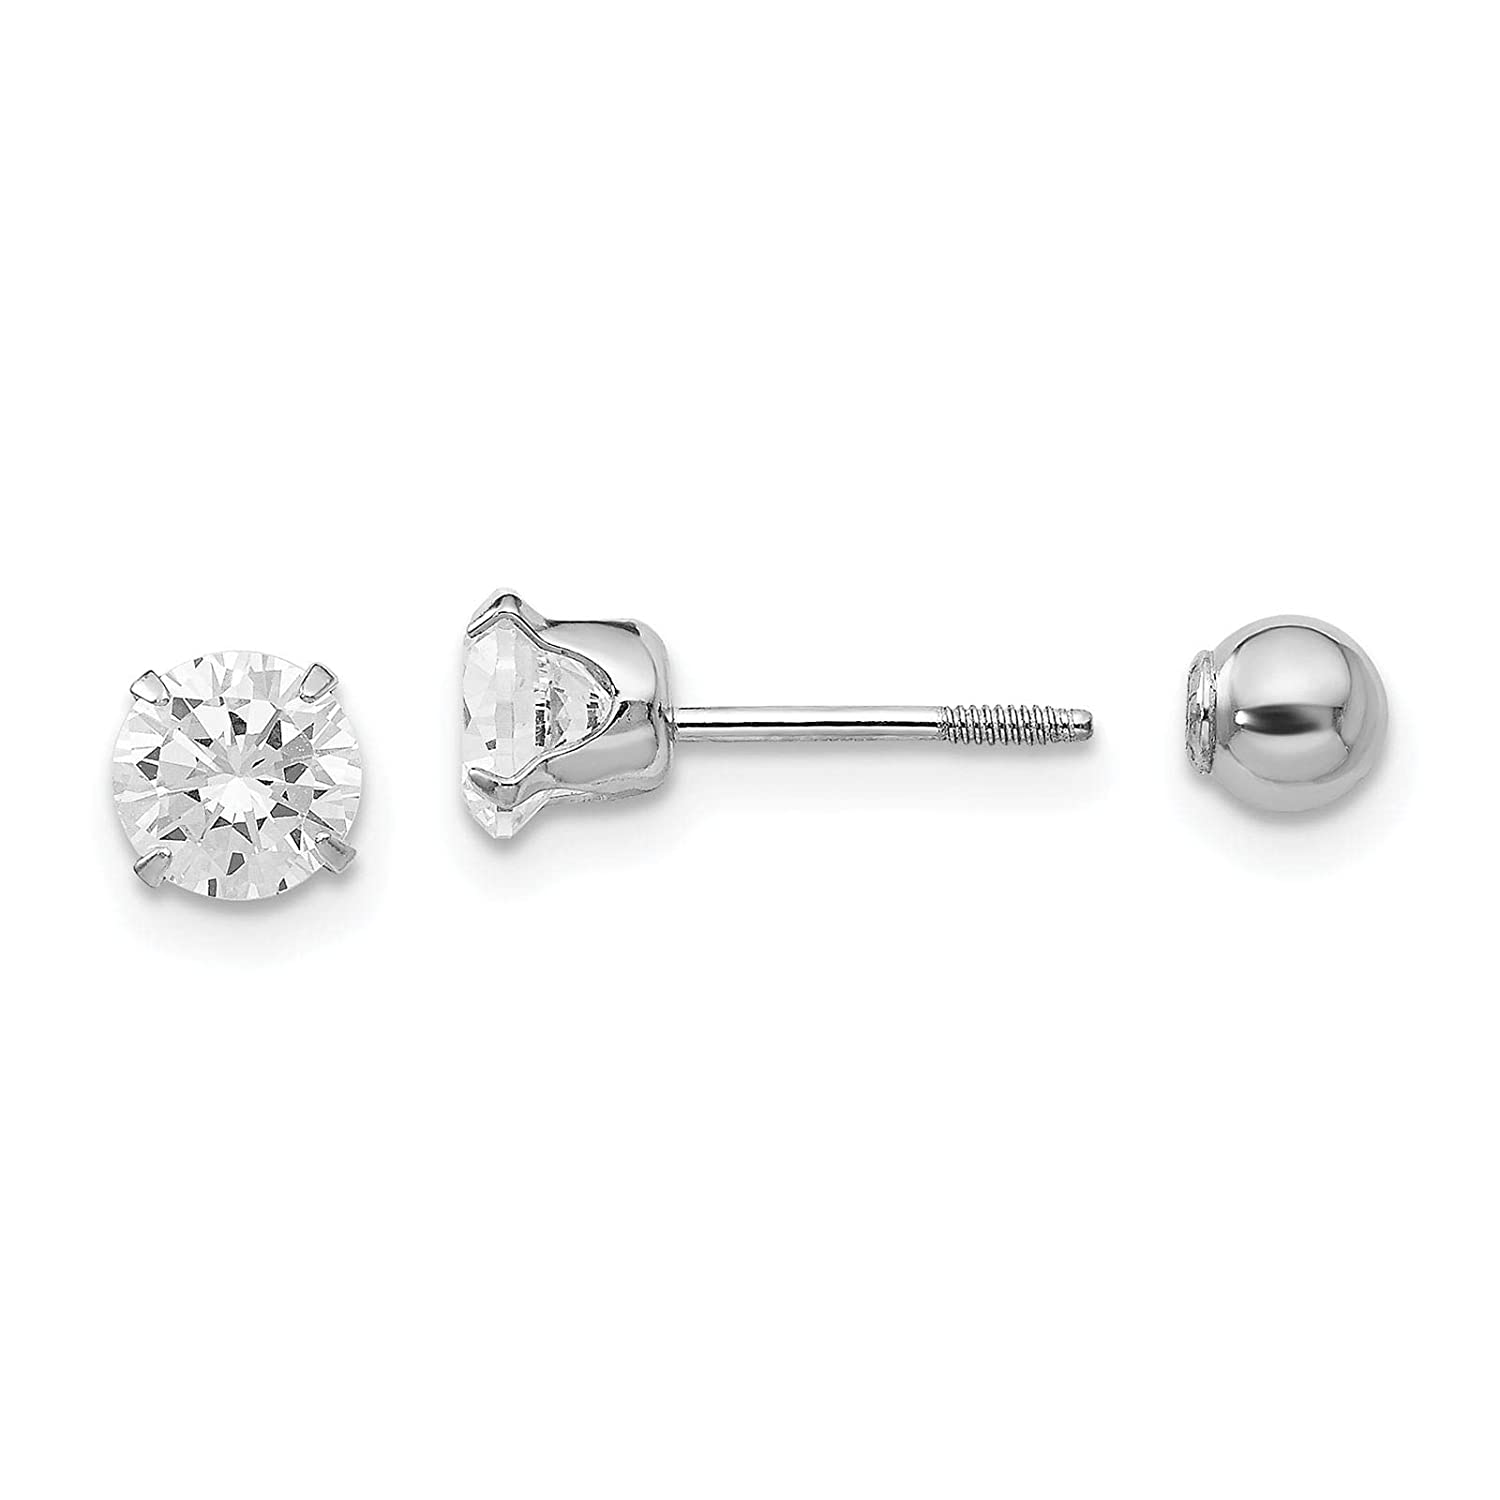 Kids 14k White Gold Polished Reversible 5mm CZ & 4mm Ball Screwback Post Earrings by Madi K